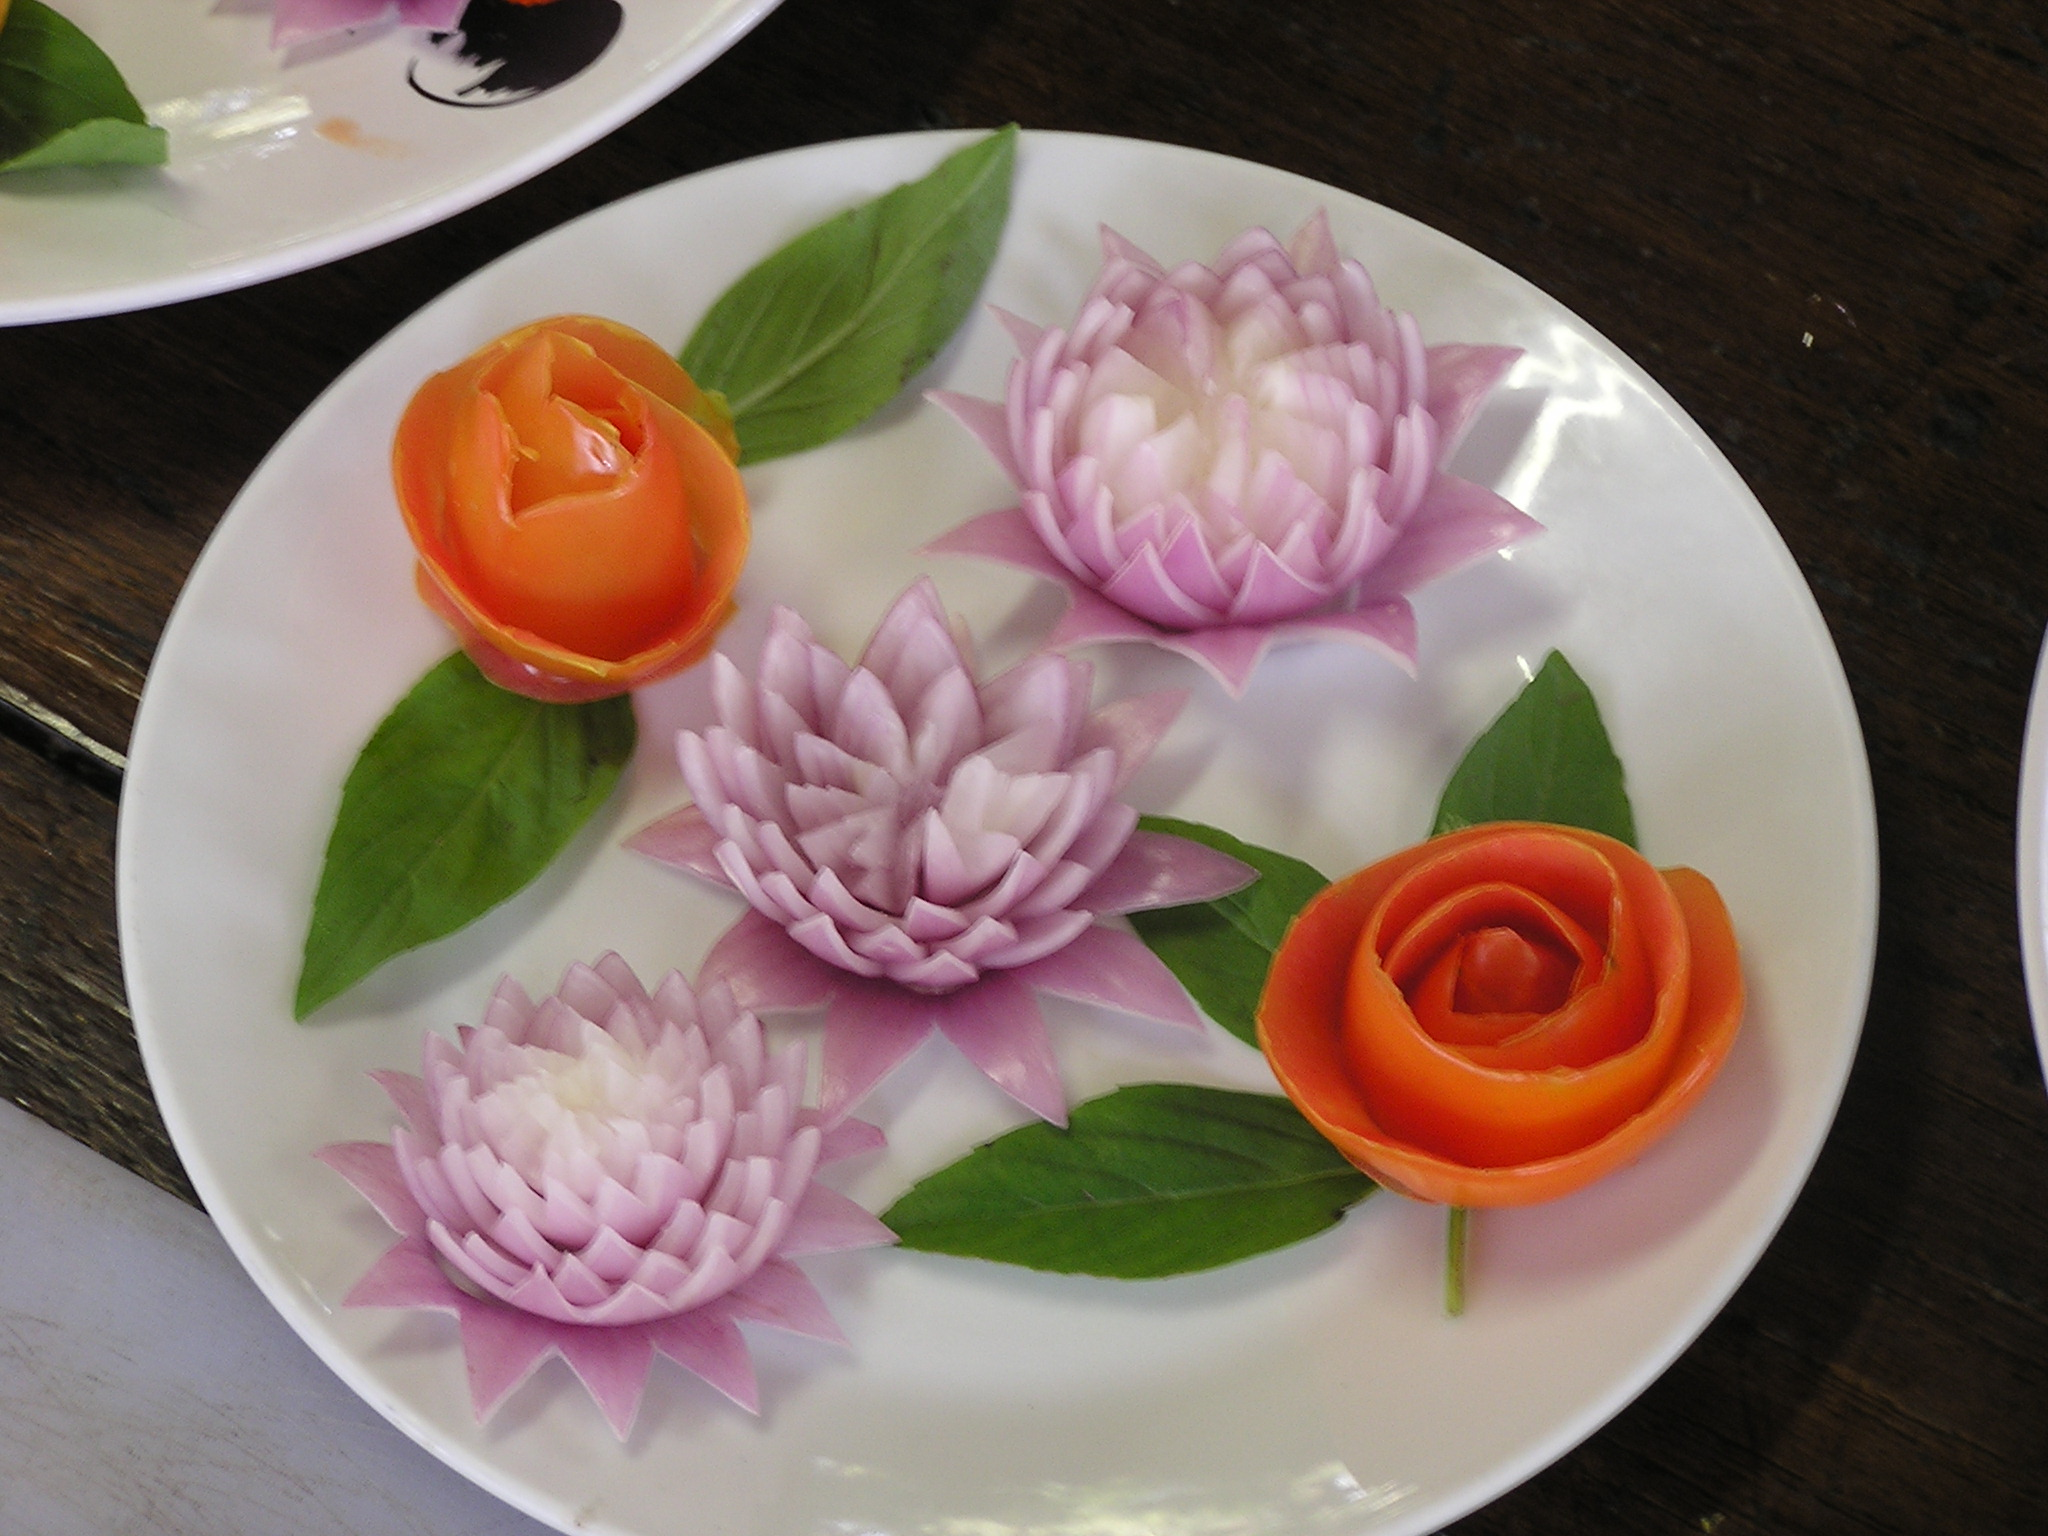 Lotus flowers of onion and roses of tomato peel (m not so good at this)